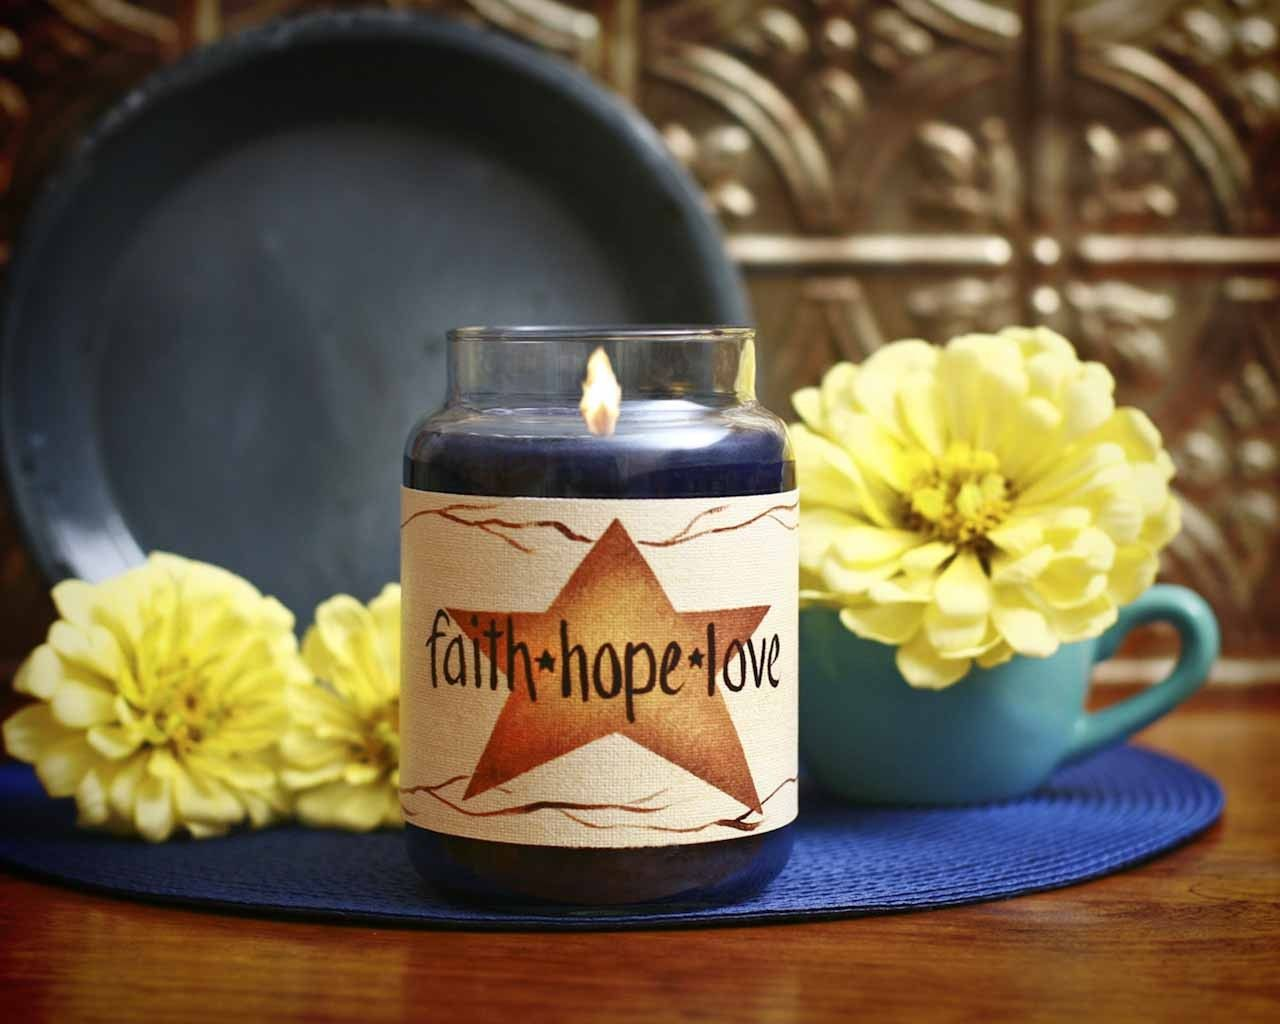 Large Star, Faith, Hope, Love Candle Wrap #4   www.thisilldocreations.com